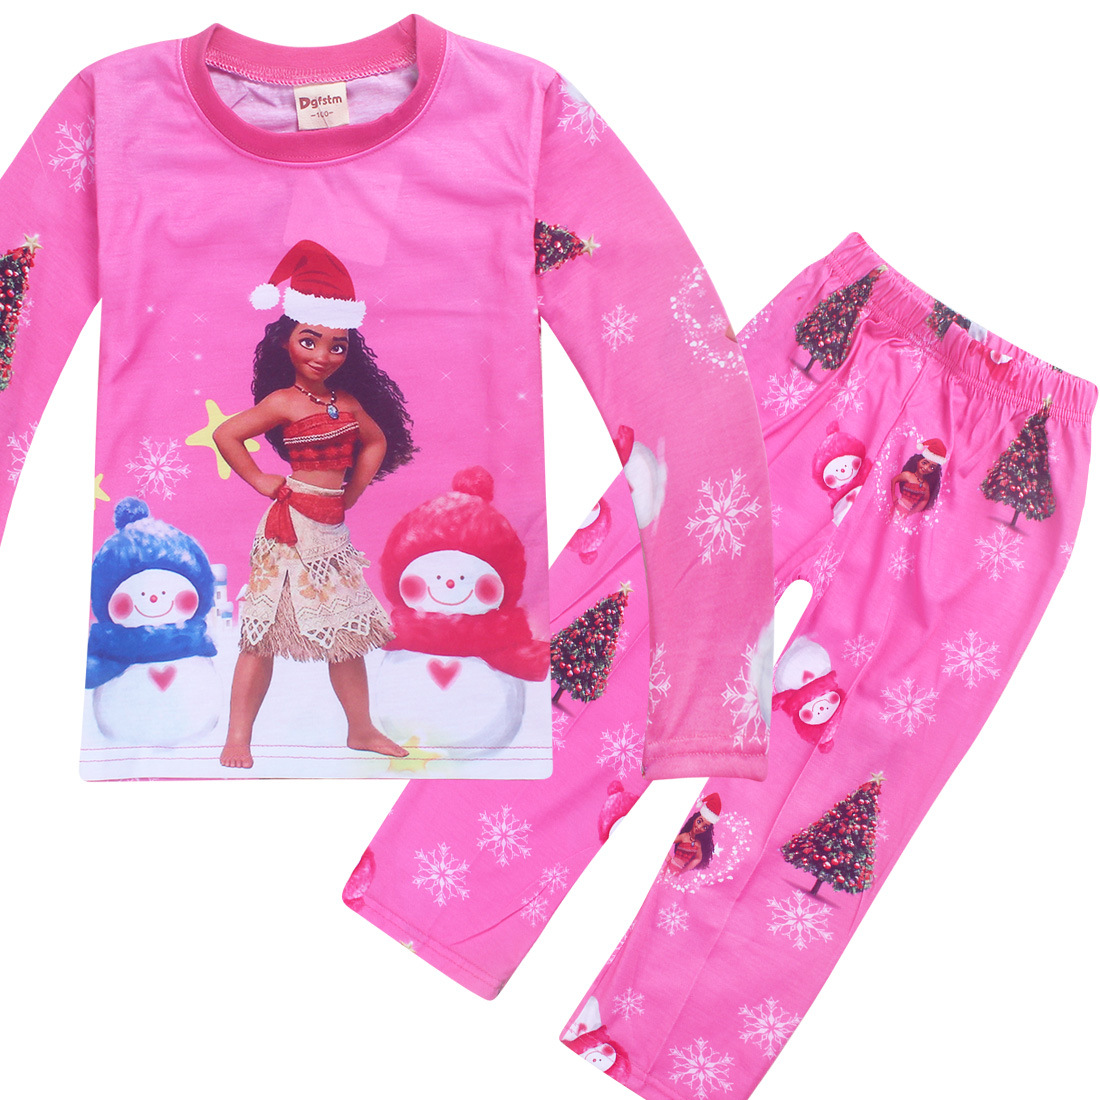 2017 Boys Sleepwear Moana Vaiana Costume Girls Pajamas Christmas Pyjama Kids Girl Pijamas Long Sleeve T-shirt+Print Clothing Set